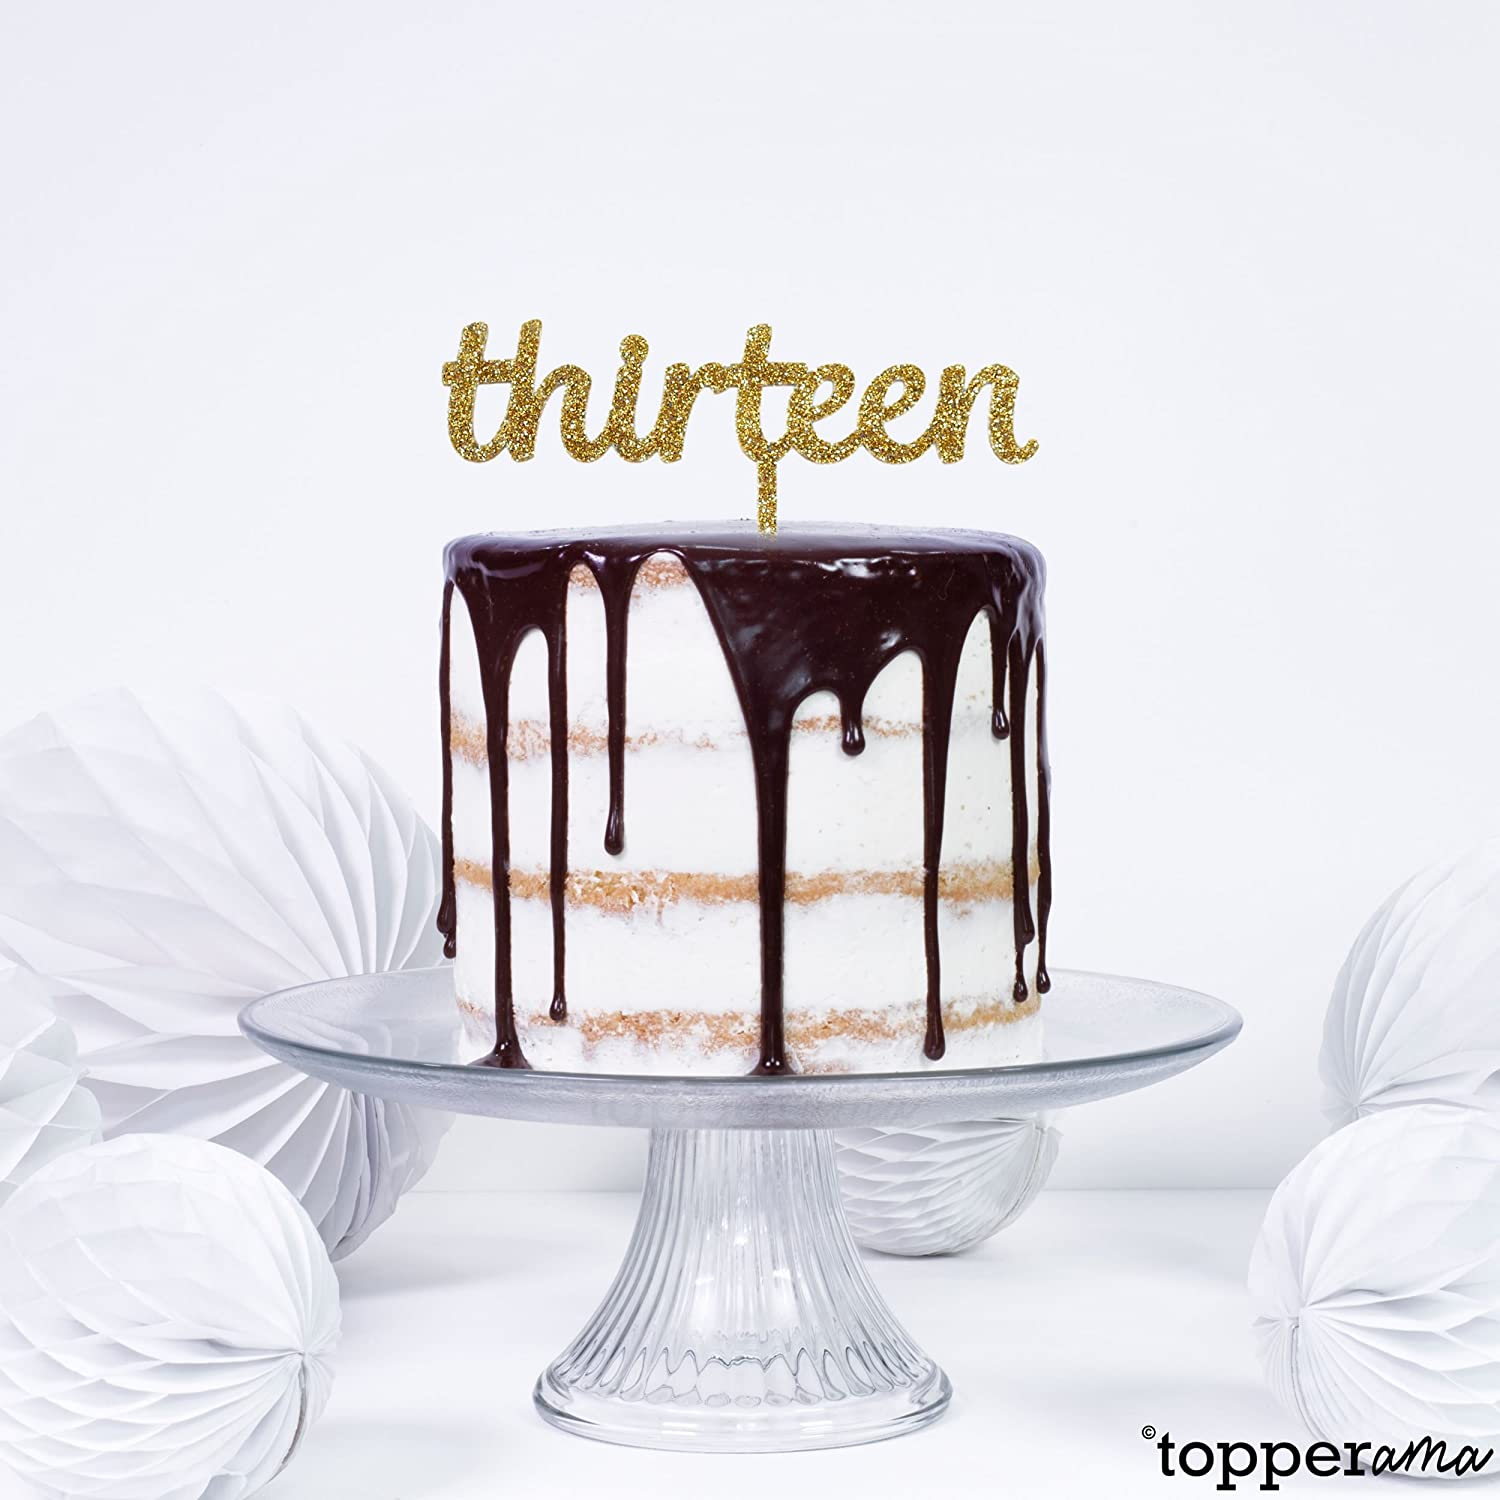 Thirteen 13 13th Age Birthday Cake Topper by Topperama (3mm Gold Glitter  Acrylic)